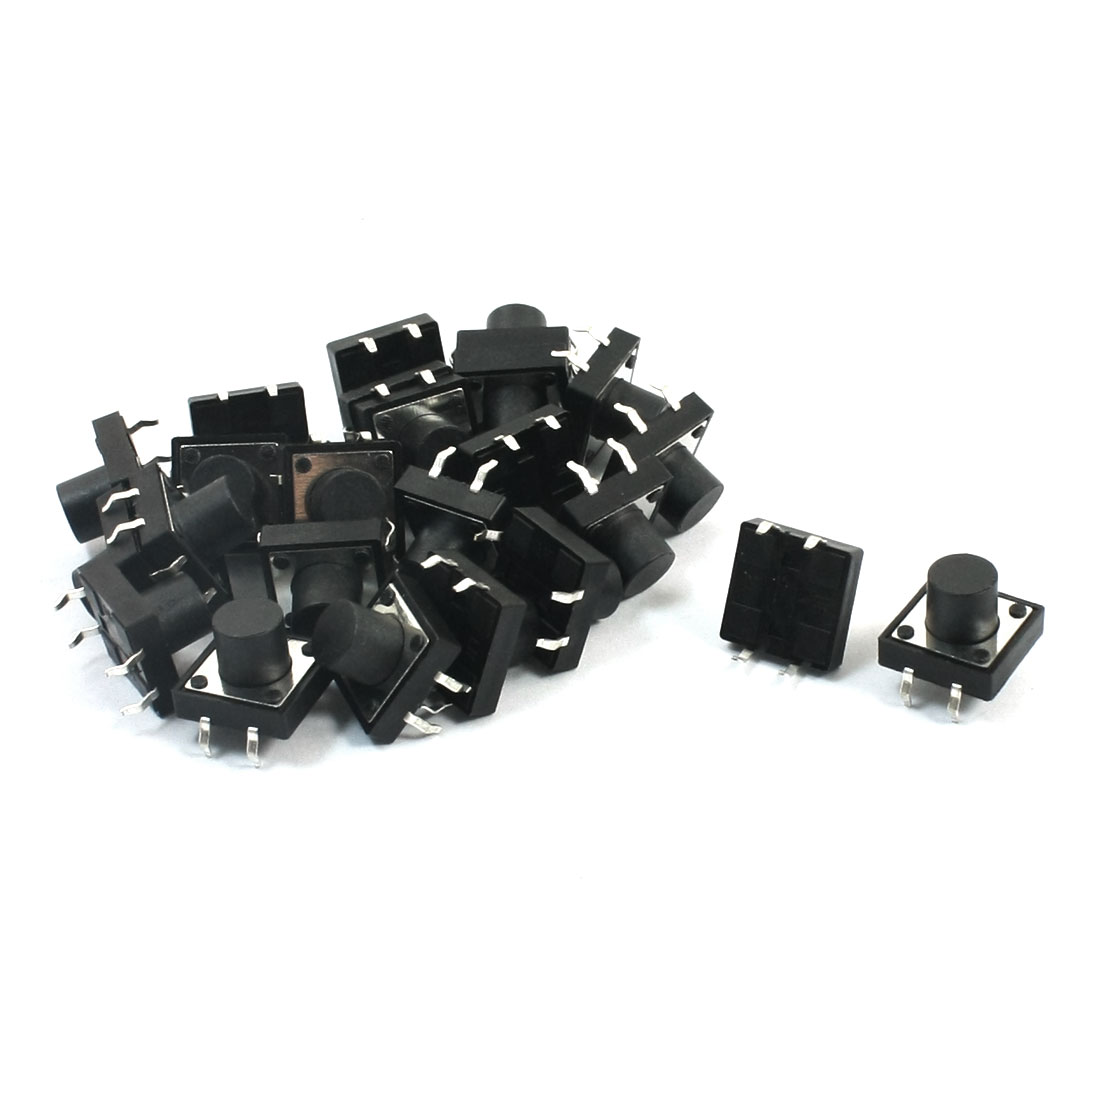 25Pcs Momentary PCB Pushbutton Push Button Tact Tactile Switch DIP 12mmx12mmx9mm